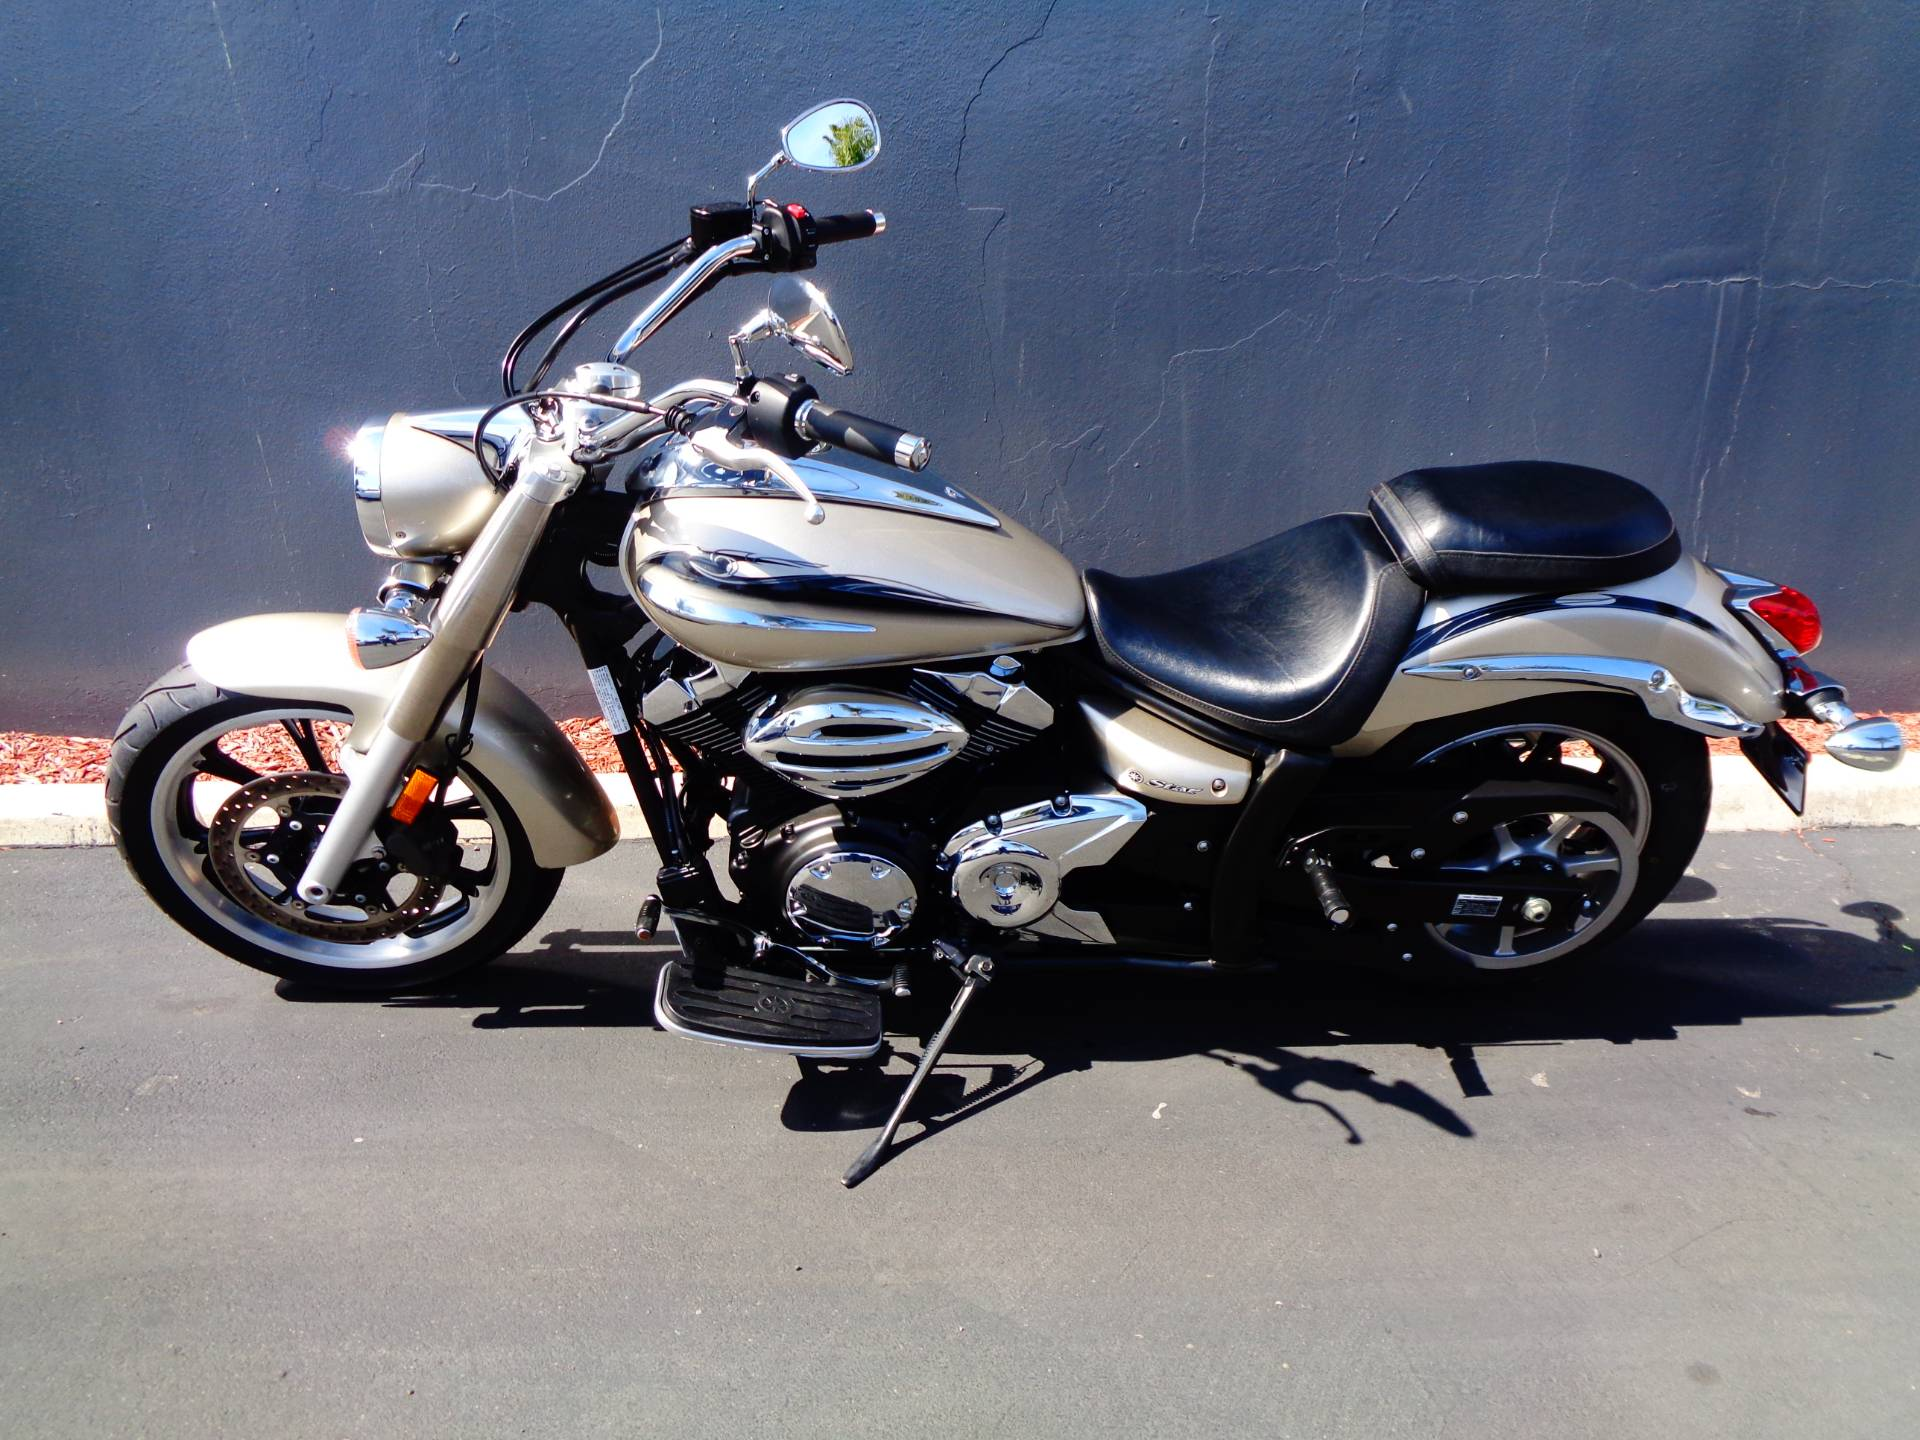 2010 Yamaha V Star 950 Tourer in Chula Vista, California - Photo 10